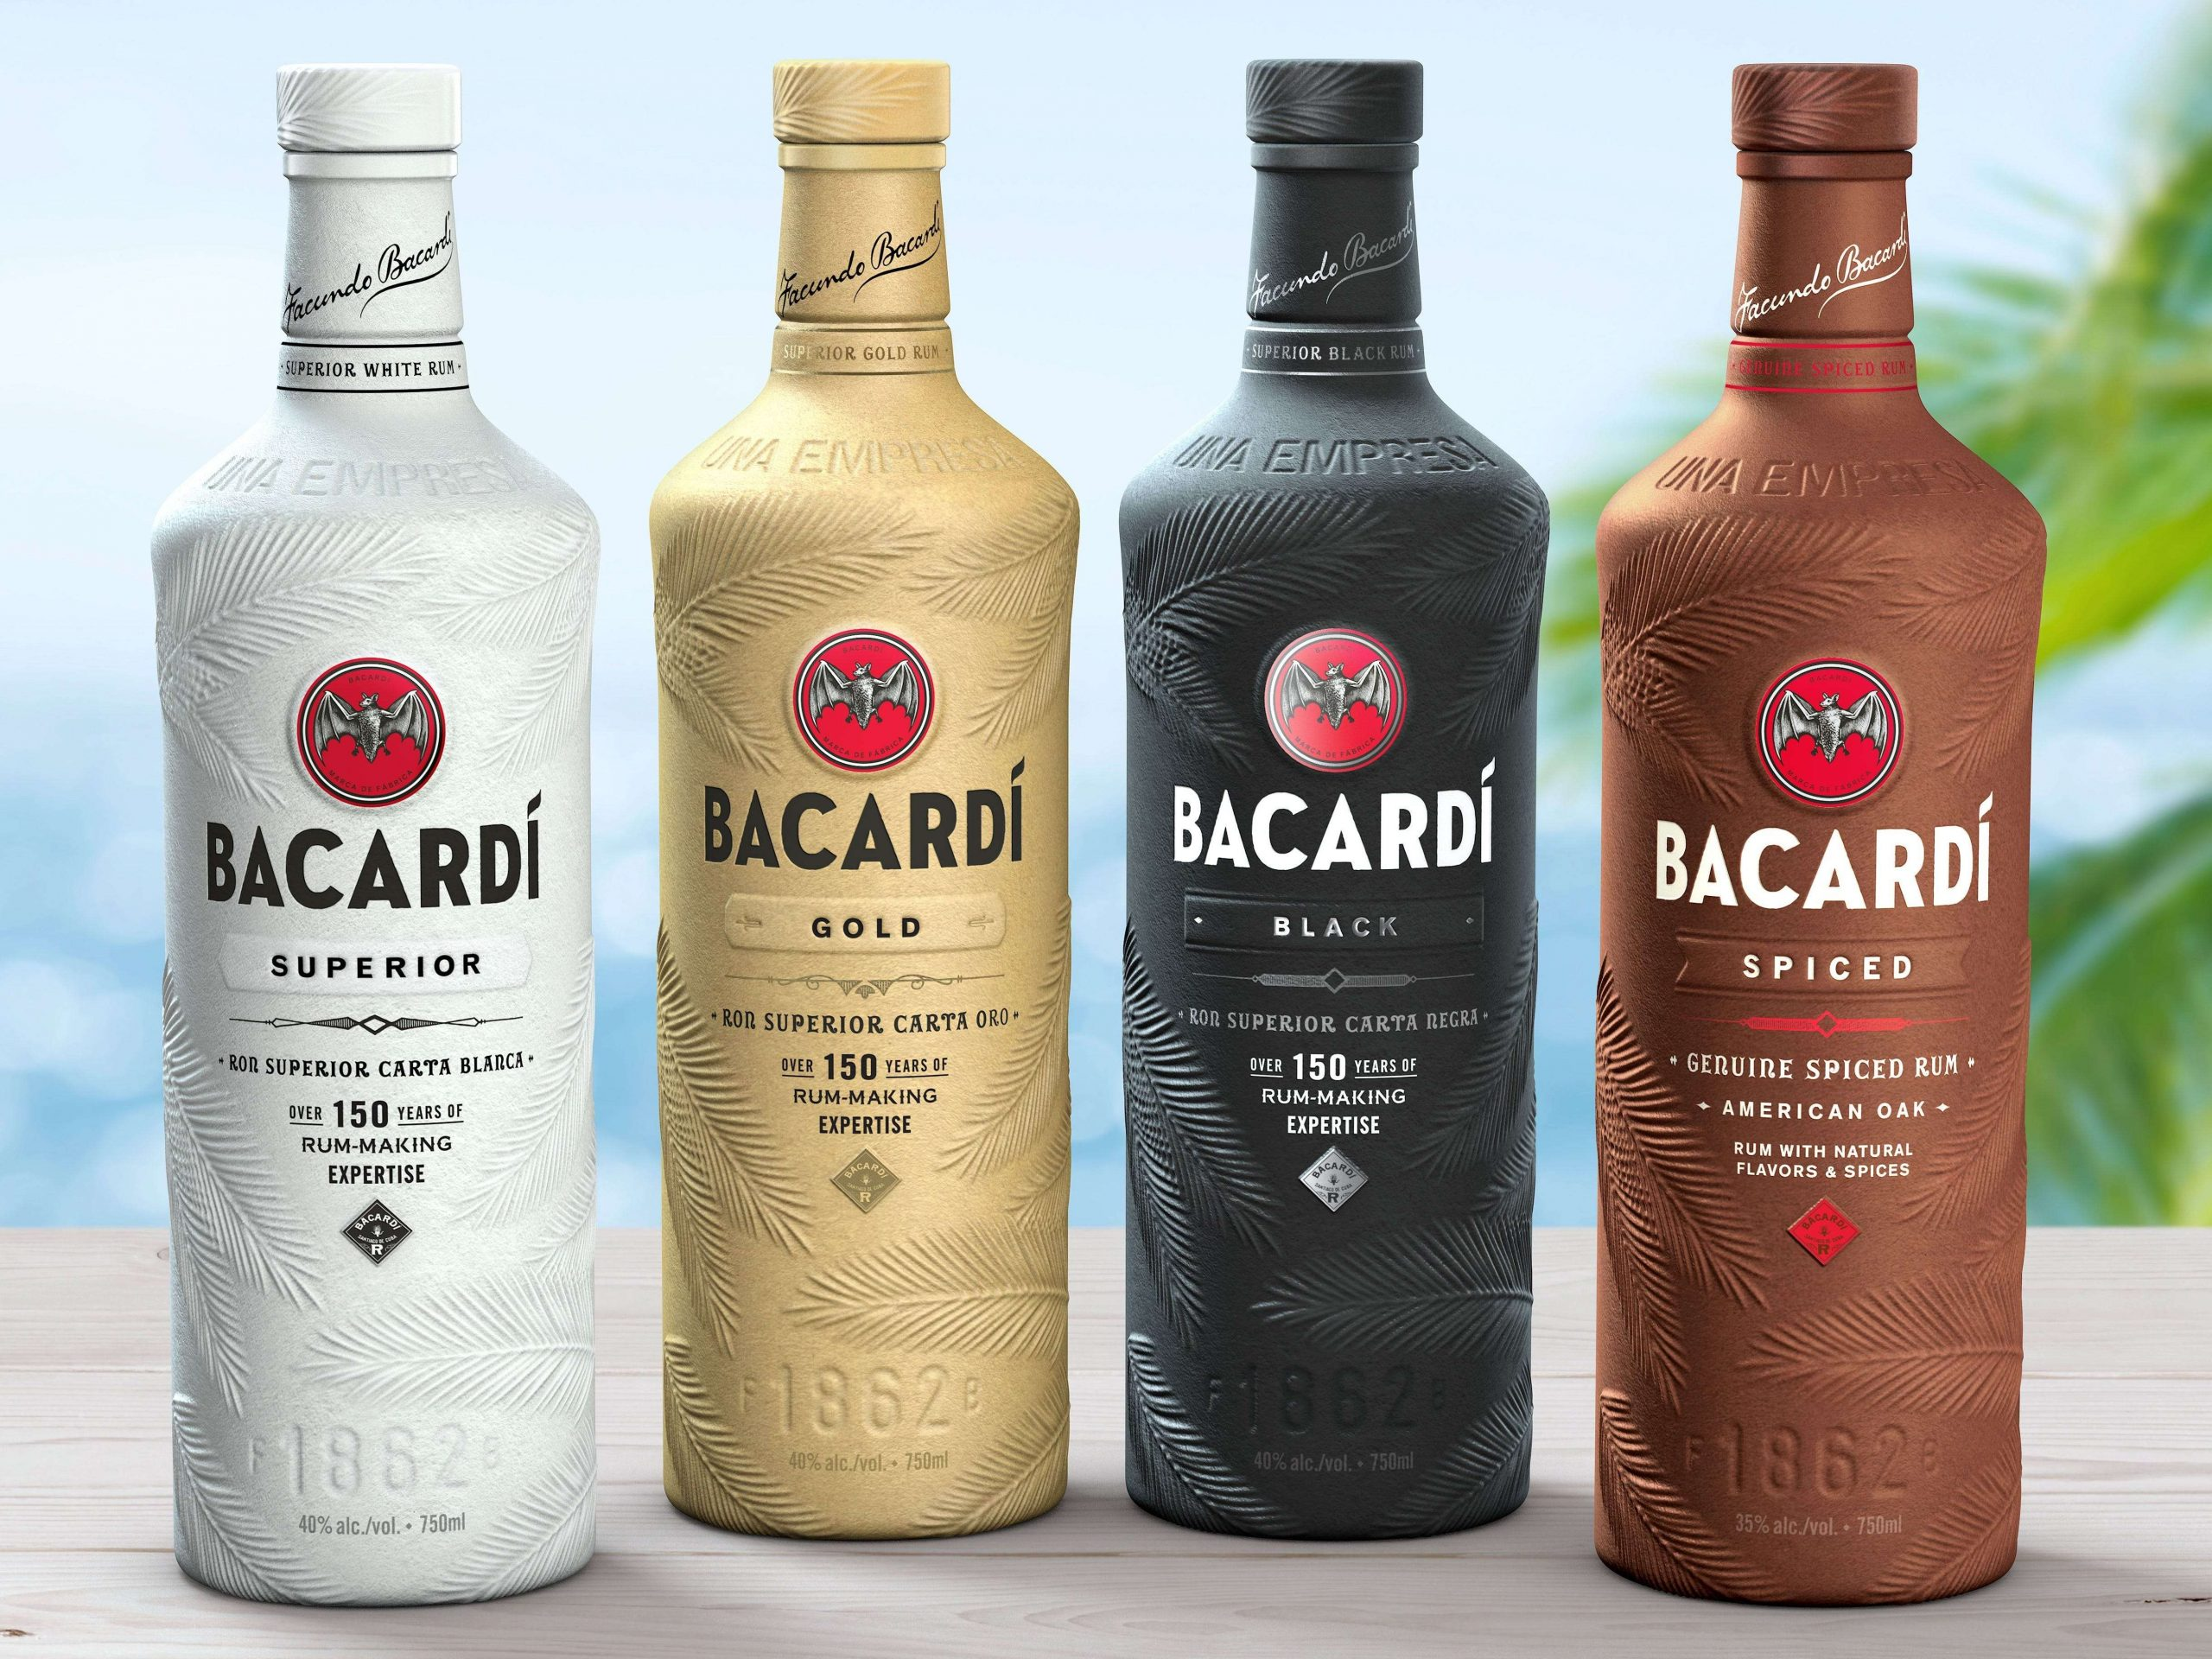 Bacardi Reduces Plastic Waste With The Launch Of The World's First Fully Biodegradable Spirits Bottle photo